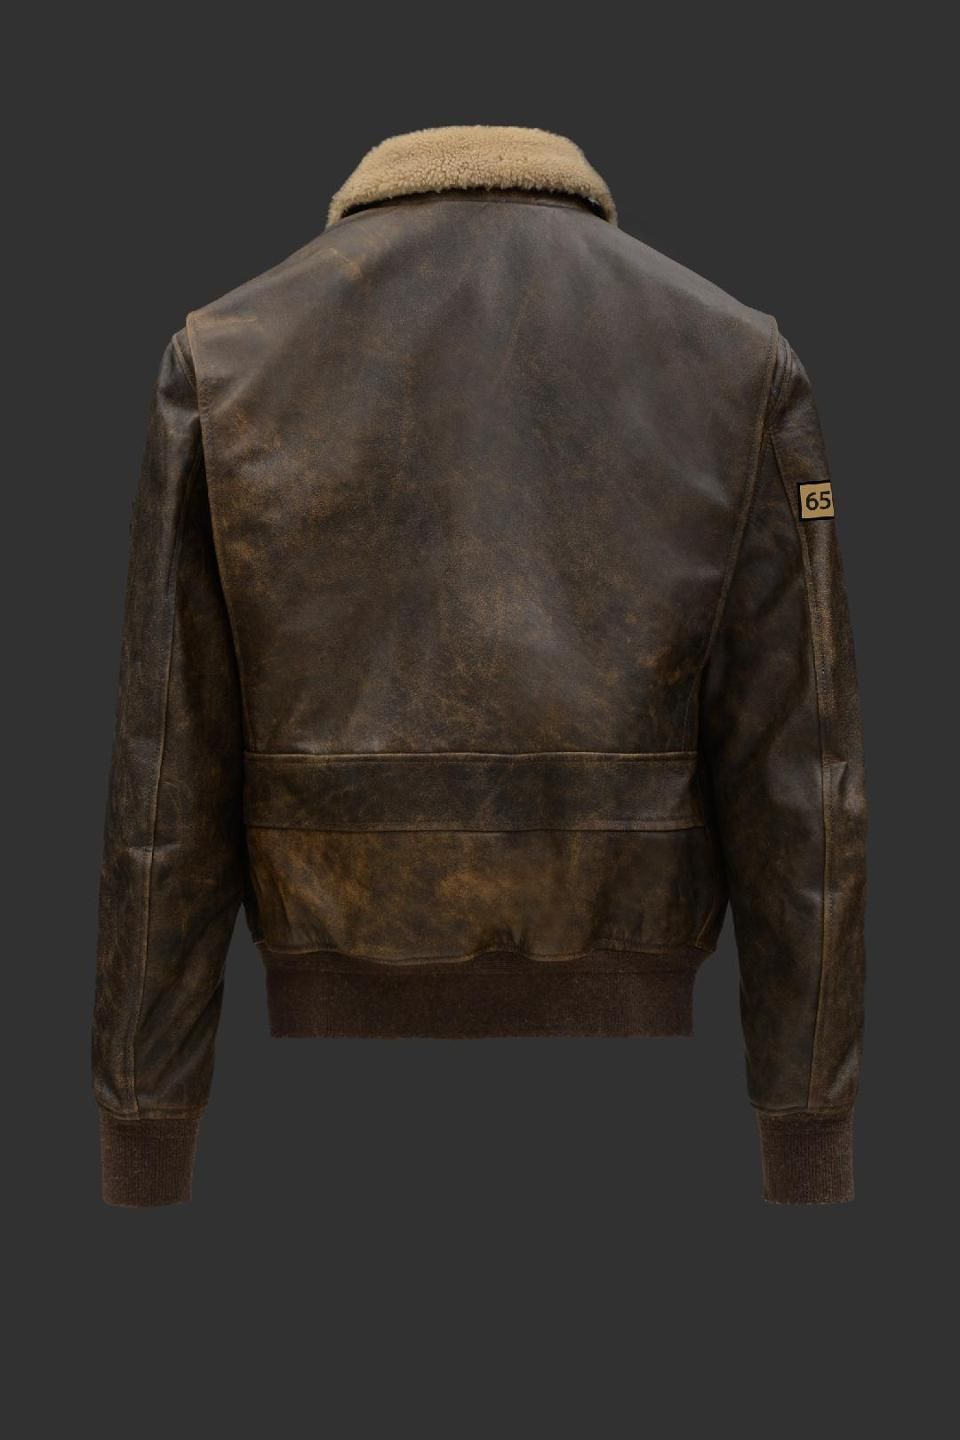 The back of the jacket